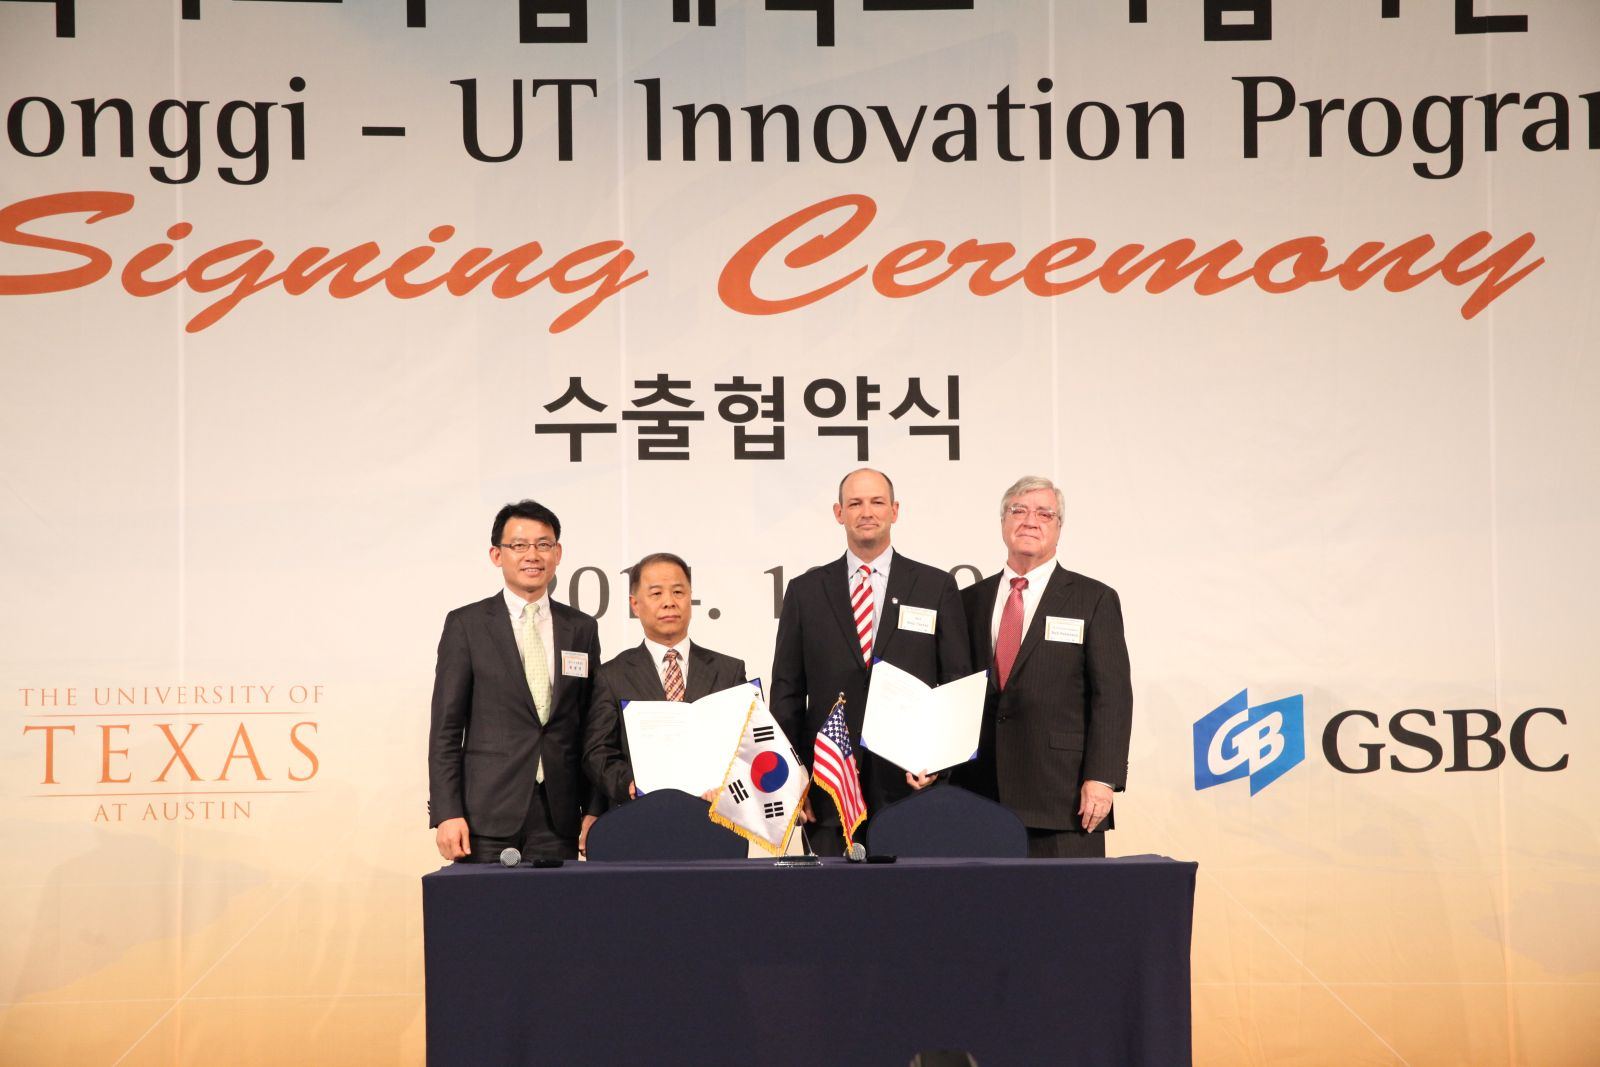 2014 UT Enterprise Support Program Export Convention Ceremony on the 20th (Mon).